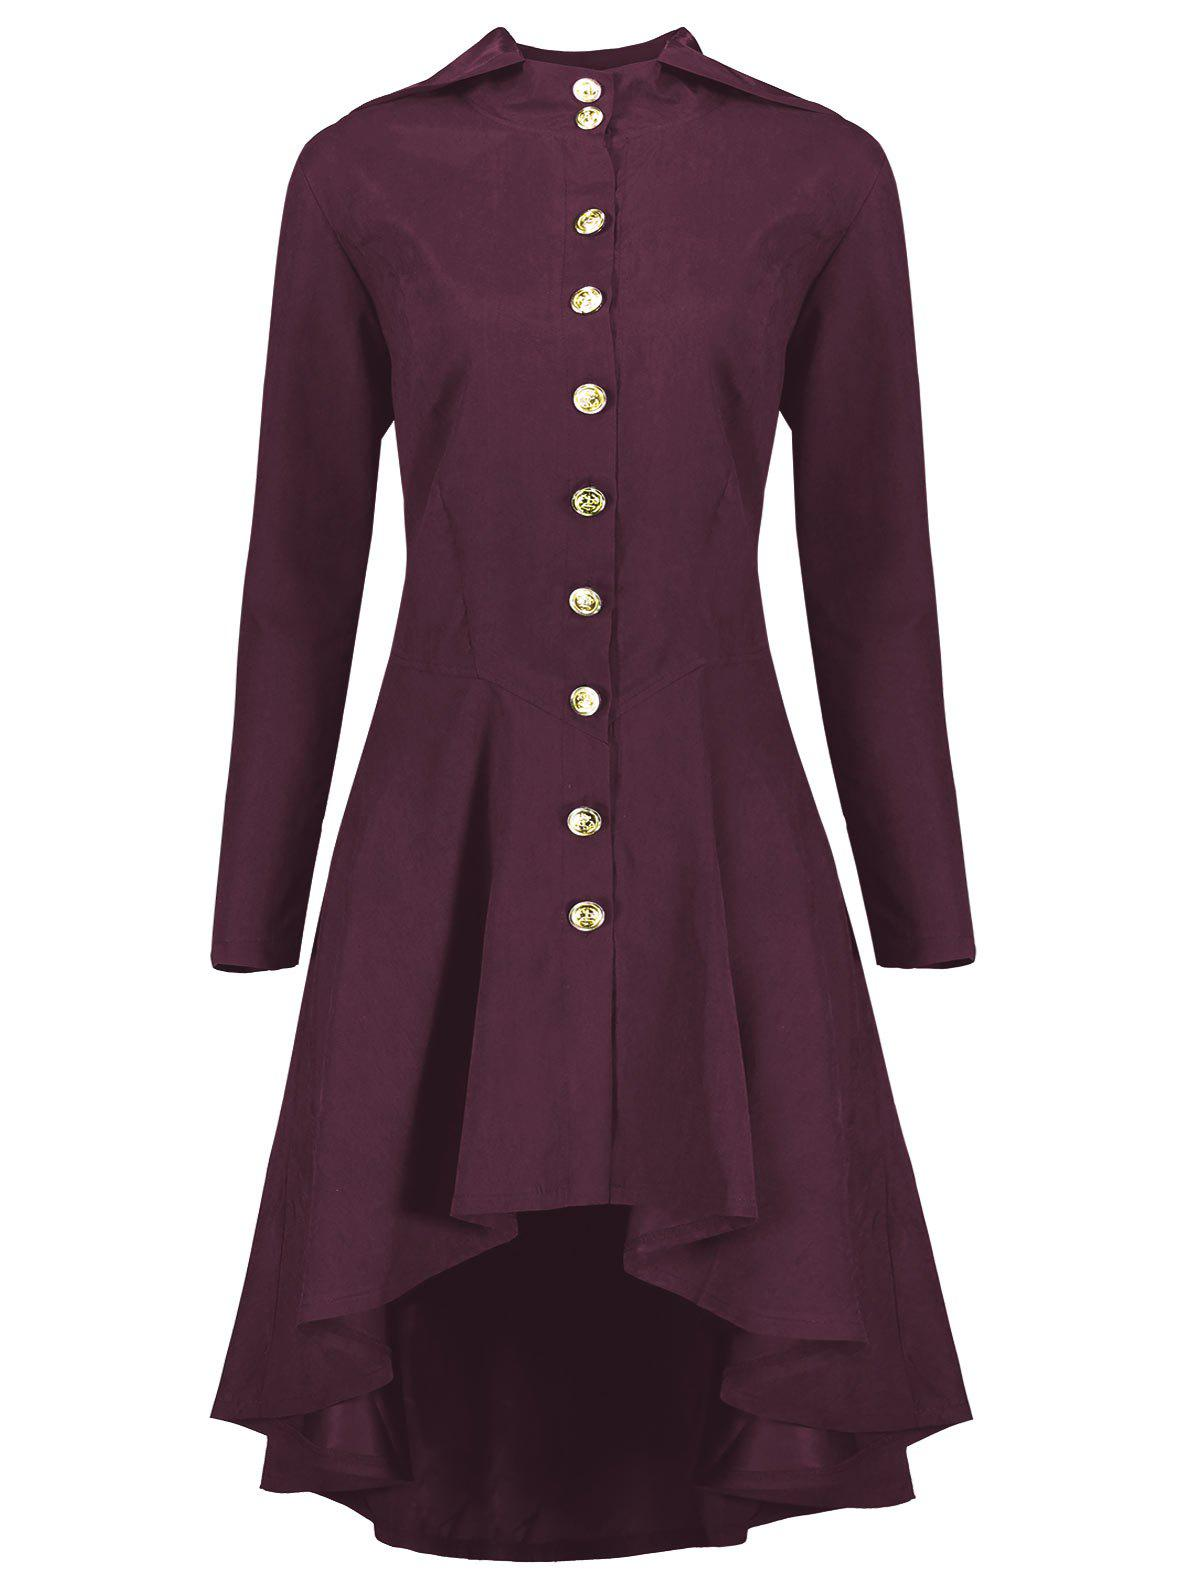 Hooded Plus Size High Low Lace Up CoatWOMEN<br><br>Size: 5XL; Color: WINE RED; Clothes Type: Others; Material: Polyester,Spandex; Type: Slim; Shirt Length: Long; Sleeve Length: Full; Collar: Hooded; Pattern Type: Solid; Style: Fashion; Season: Fall,Winter; Weight: 0.5200kg; Package Contents: 1 x Coat;